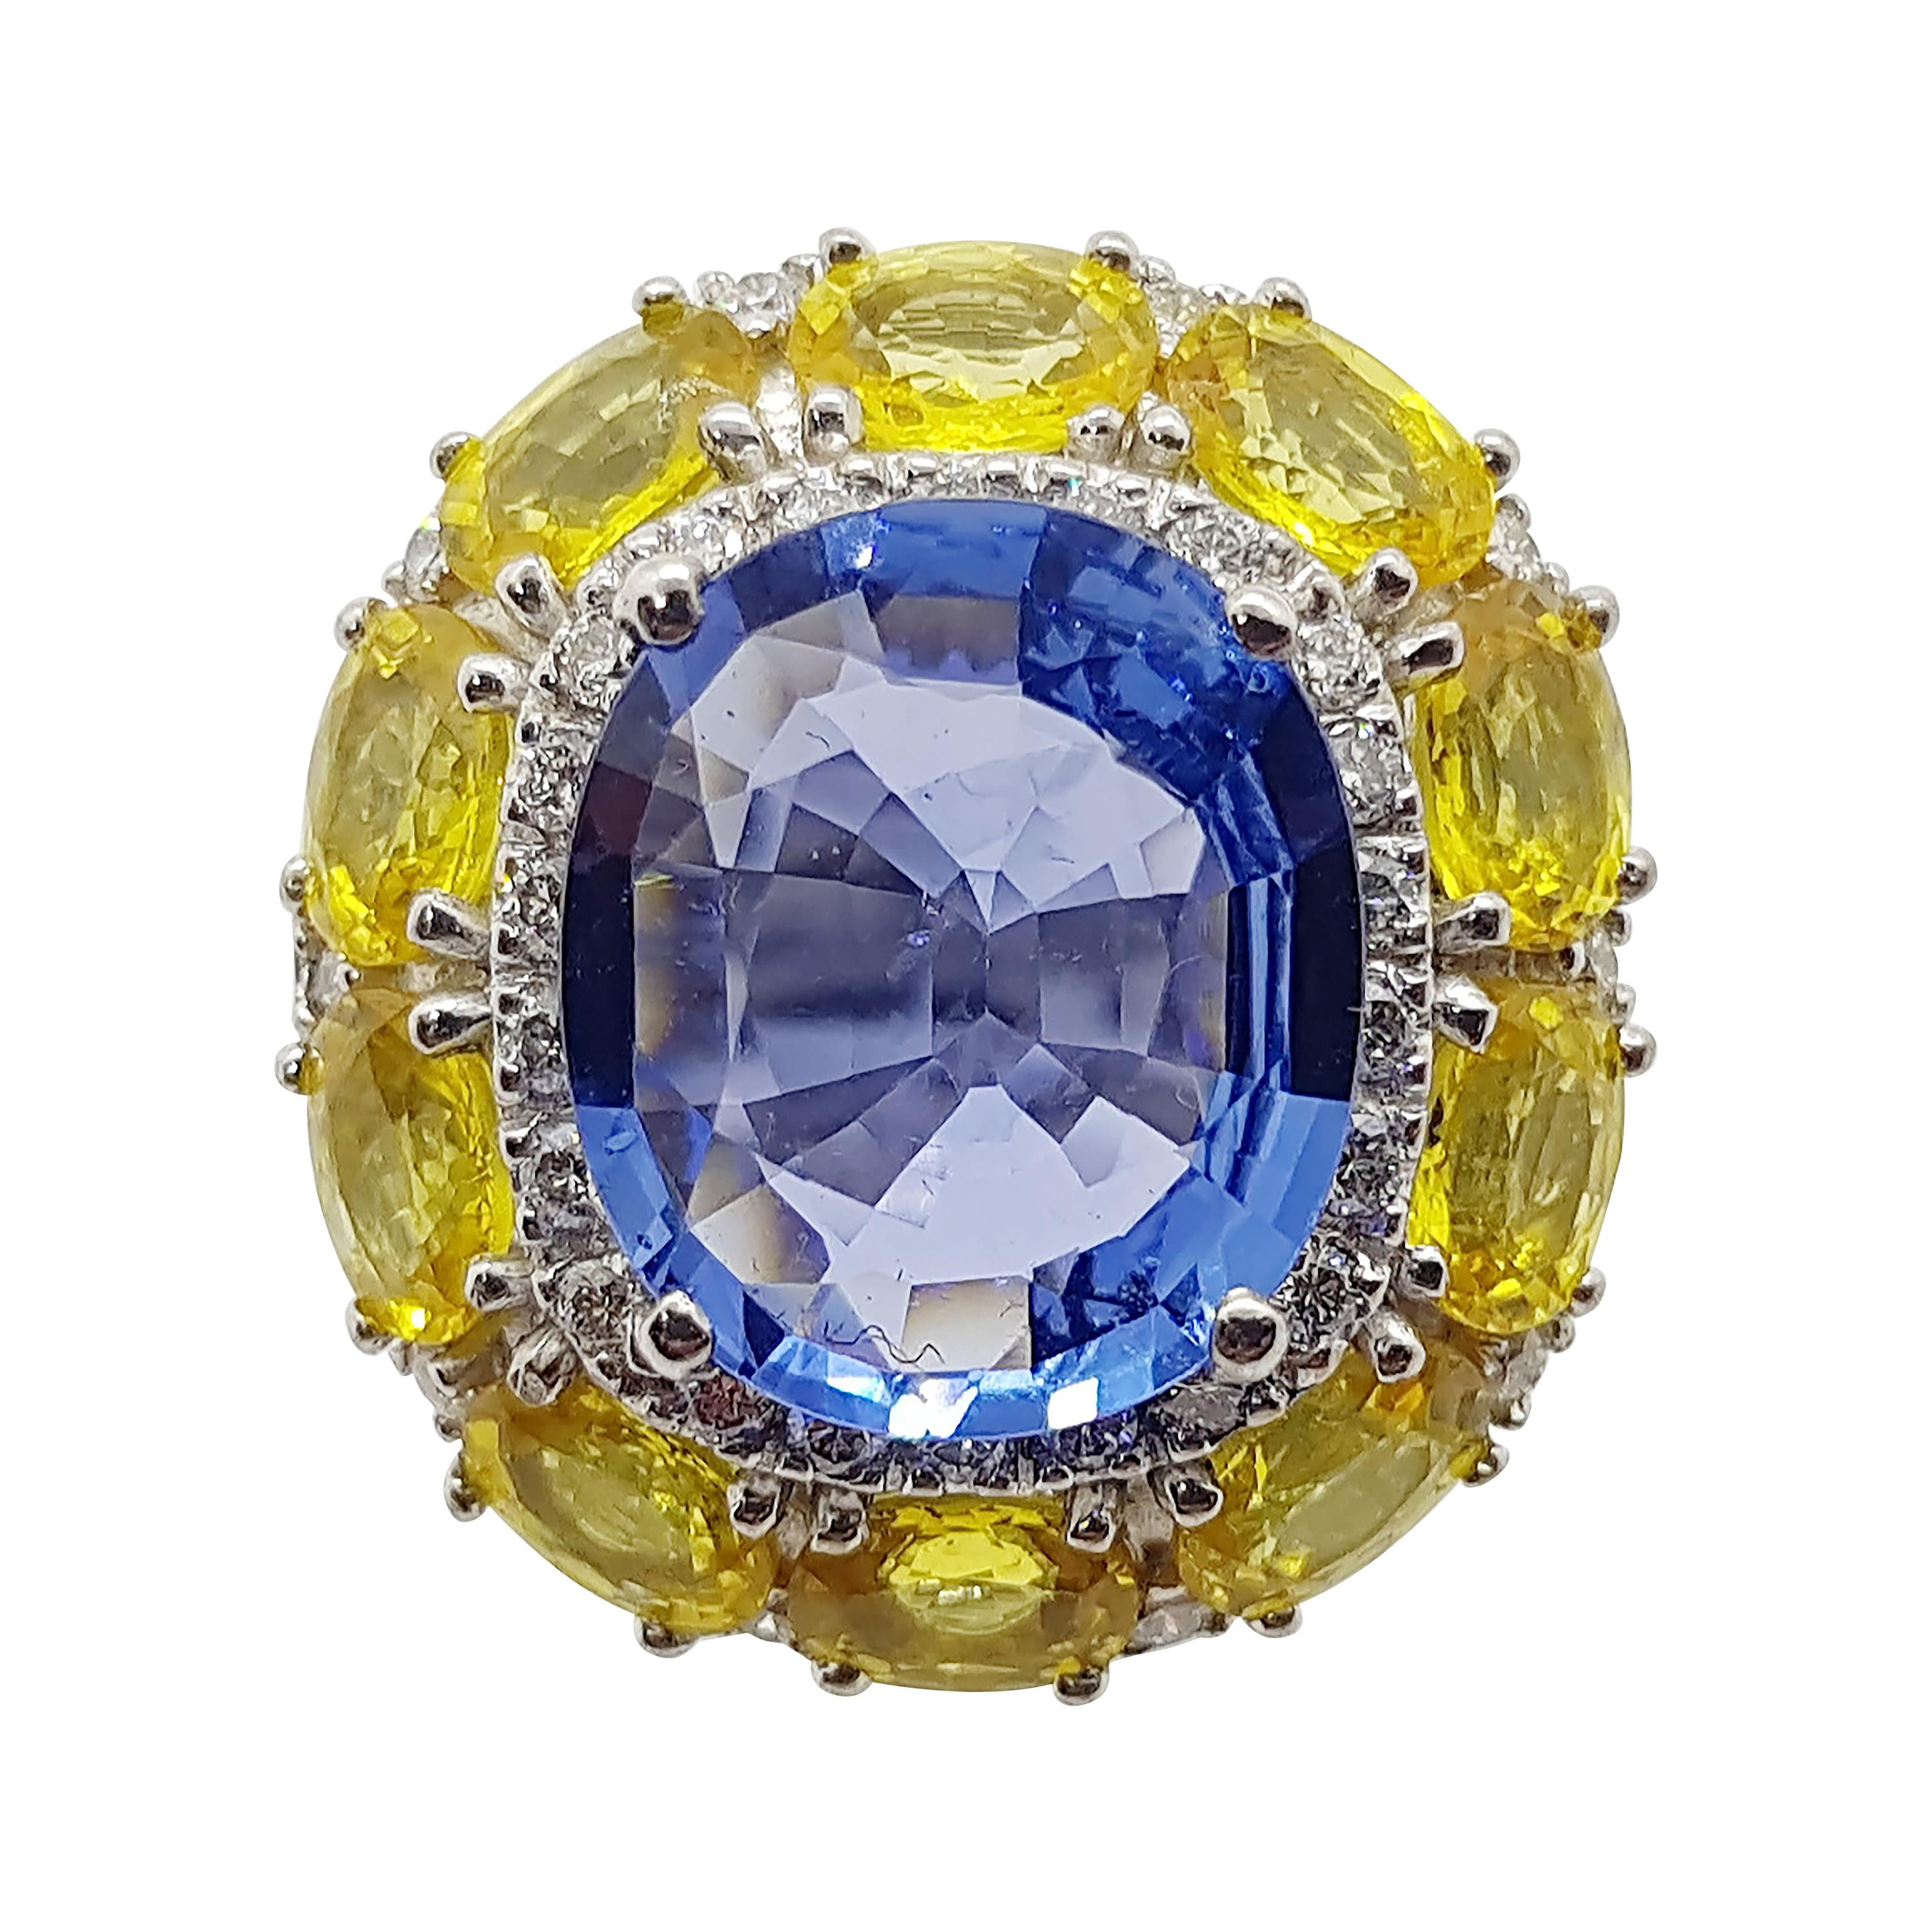 Blue Sapphire with Yellow Sapphire and Diamond Ring Set in 18 Karat White Gold